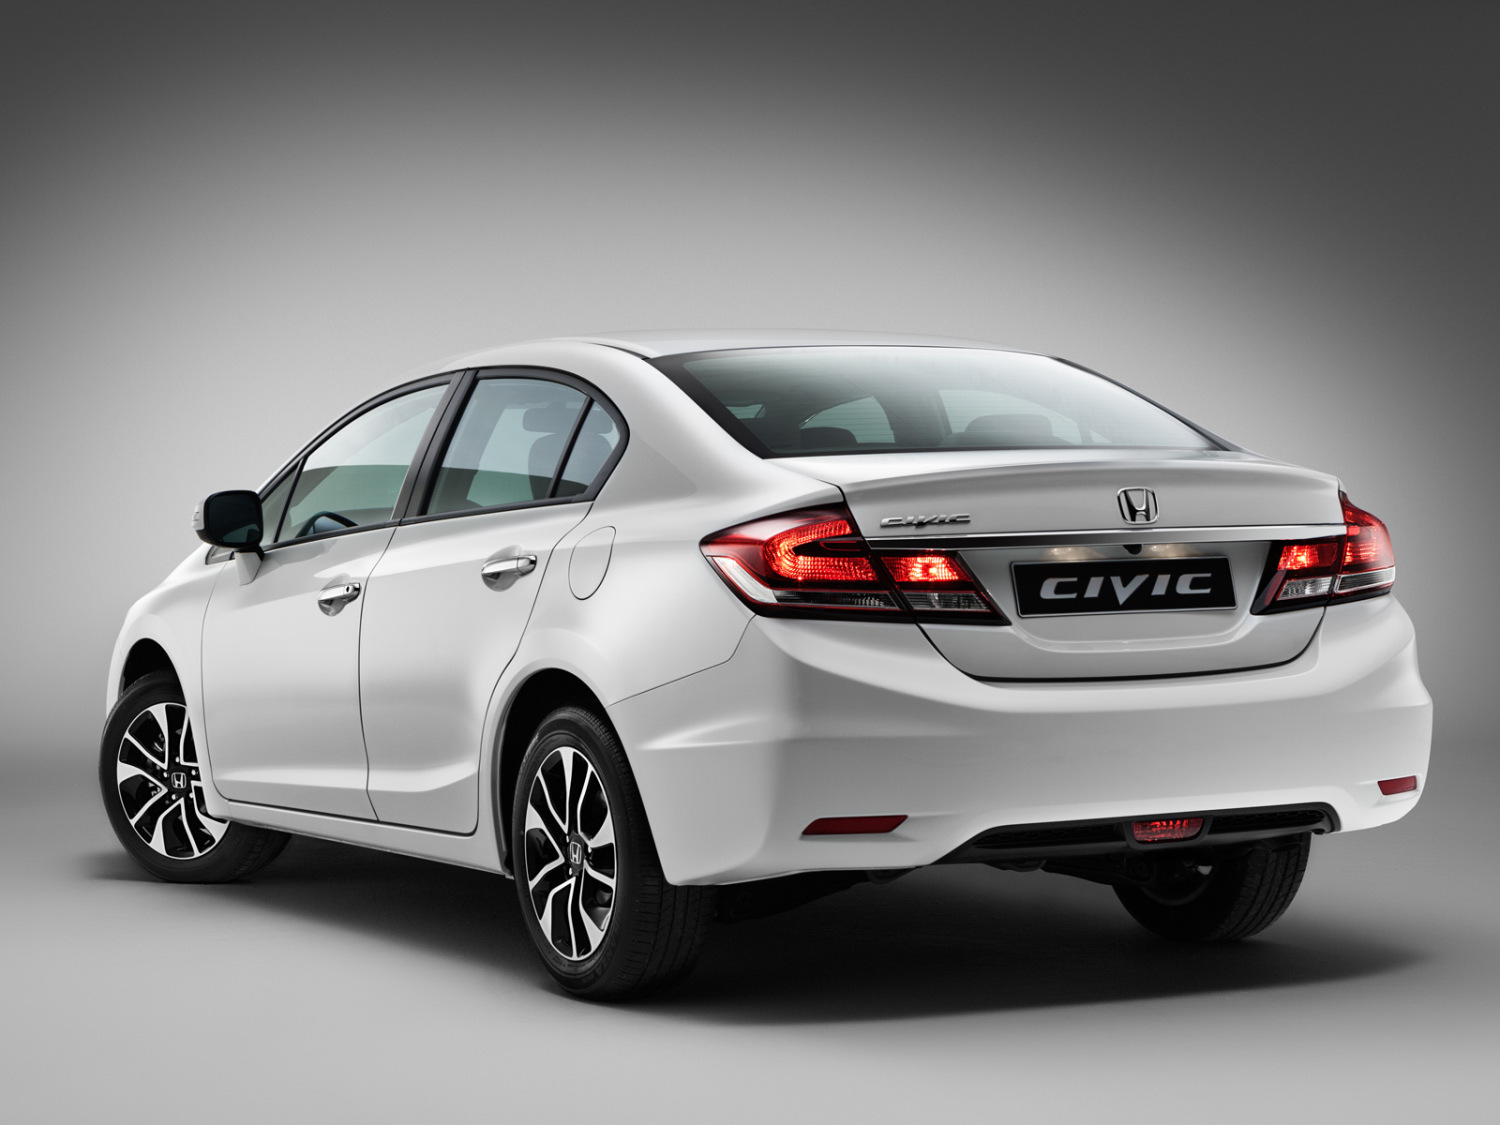 Makyajl 2014 honda civic sedan avrupa pazar na geliyor for Honda civic hatchback 2013